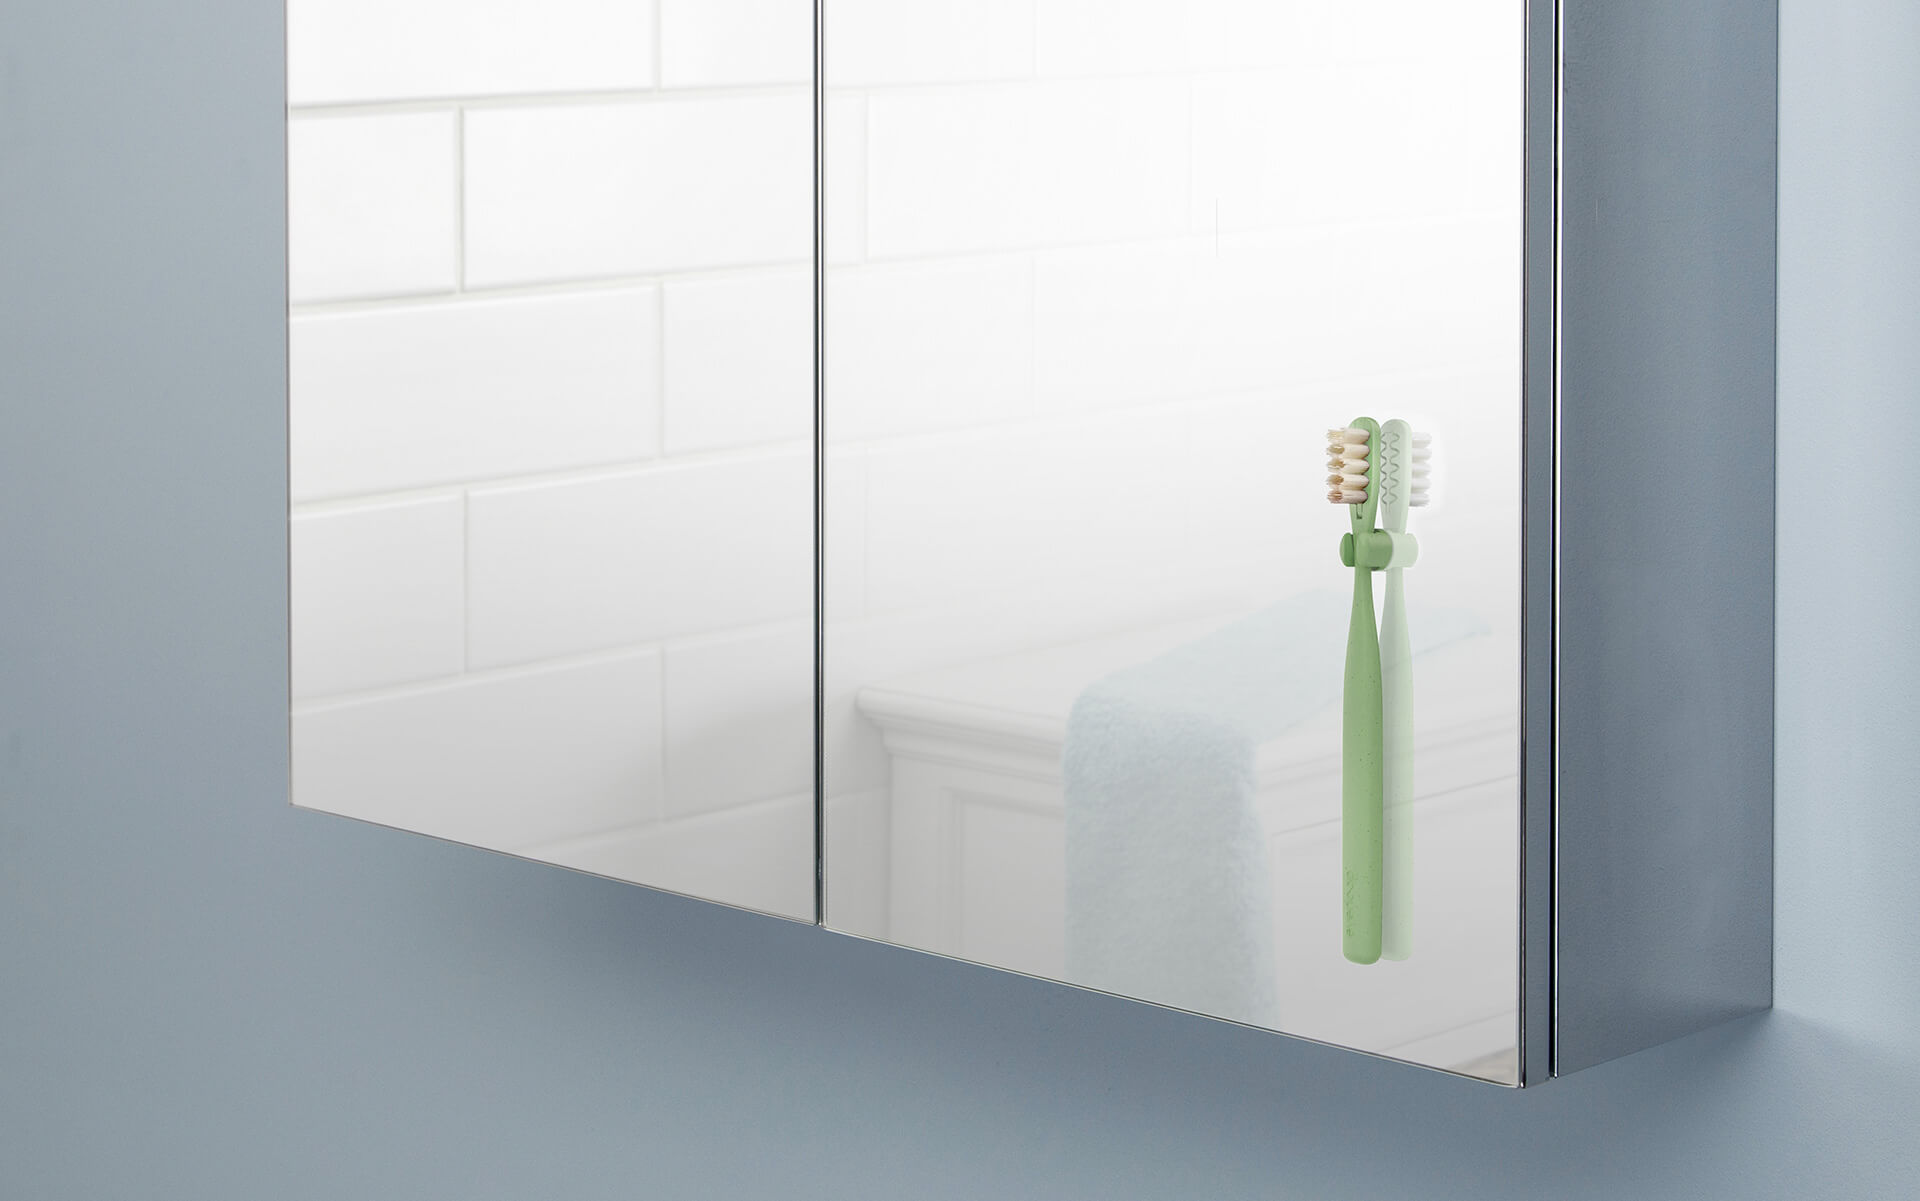 Everloop toothbrush – an eco-friendly product for oral care | Everloop Toothbrush | NOS | STIRworld